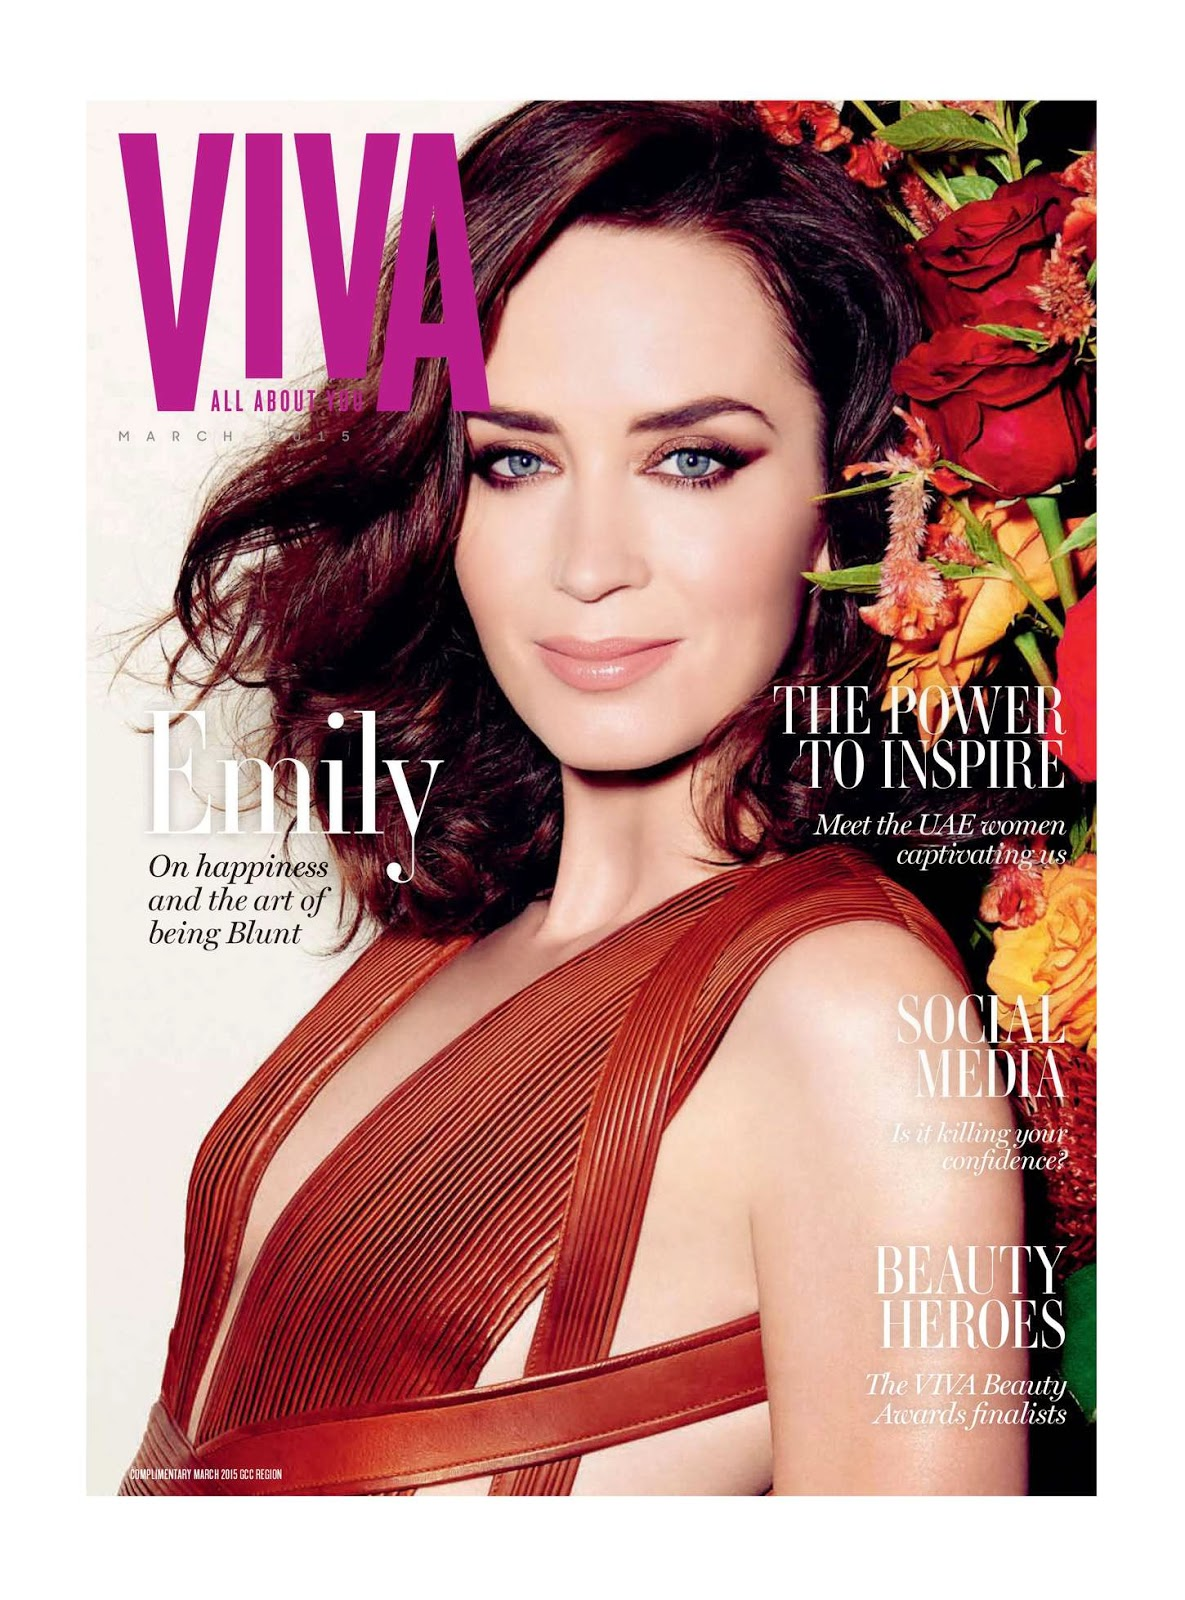 Actress @ Emily Blunt - VIVA Middle East, March 2015 Issue